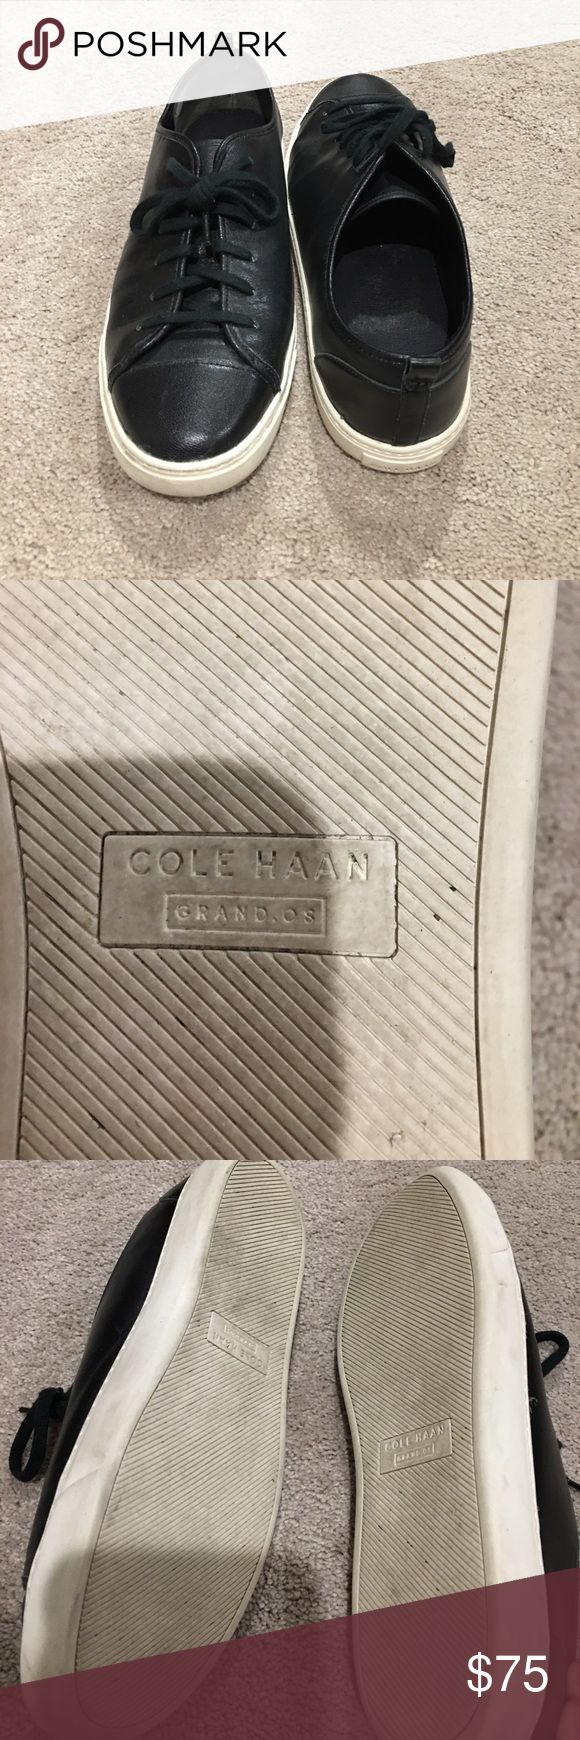 Cole Hann Black Sneakers Bowling Shoe Only worn once. Great condition. Comfortable fit. One small scuff of the front left toe, easily fixed (pictured). Leather. Cole Haan Shoes Sneakers